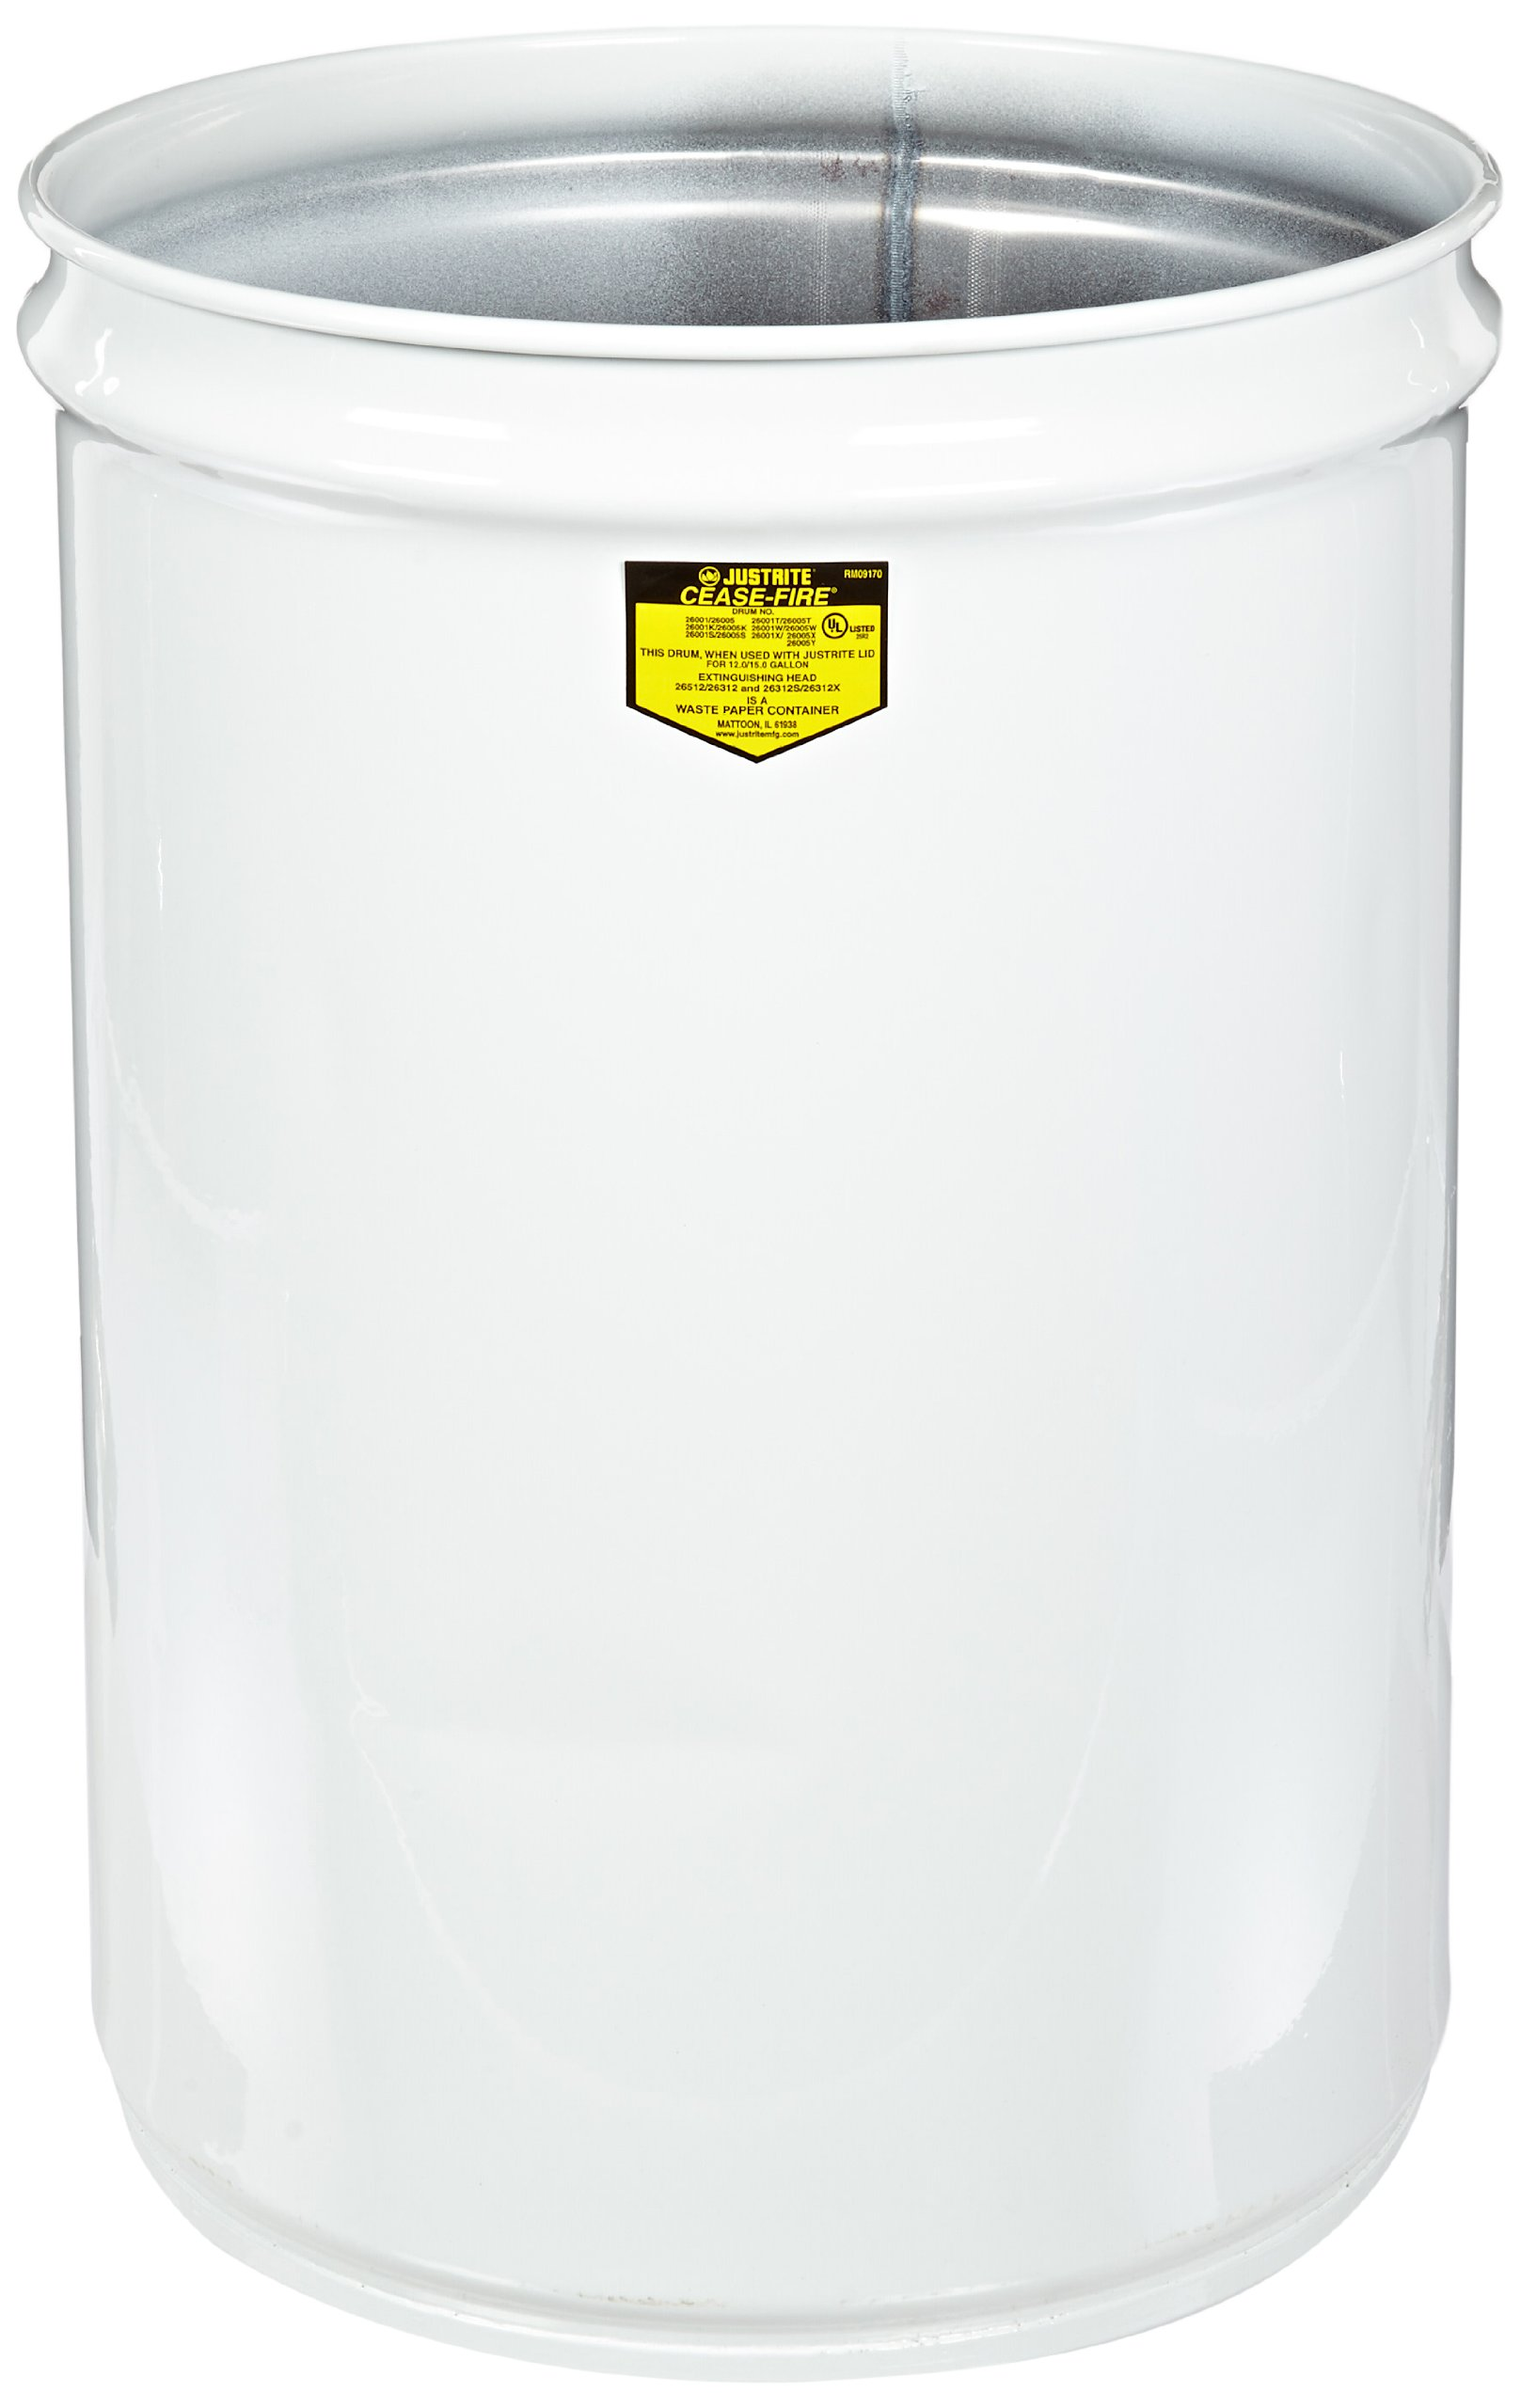 Justrite 26001W Cease-Fire Steel Drum, 12 Gallon Capacity, 14-1/2'' OD x 20-1/4'' Height, White